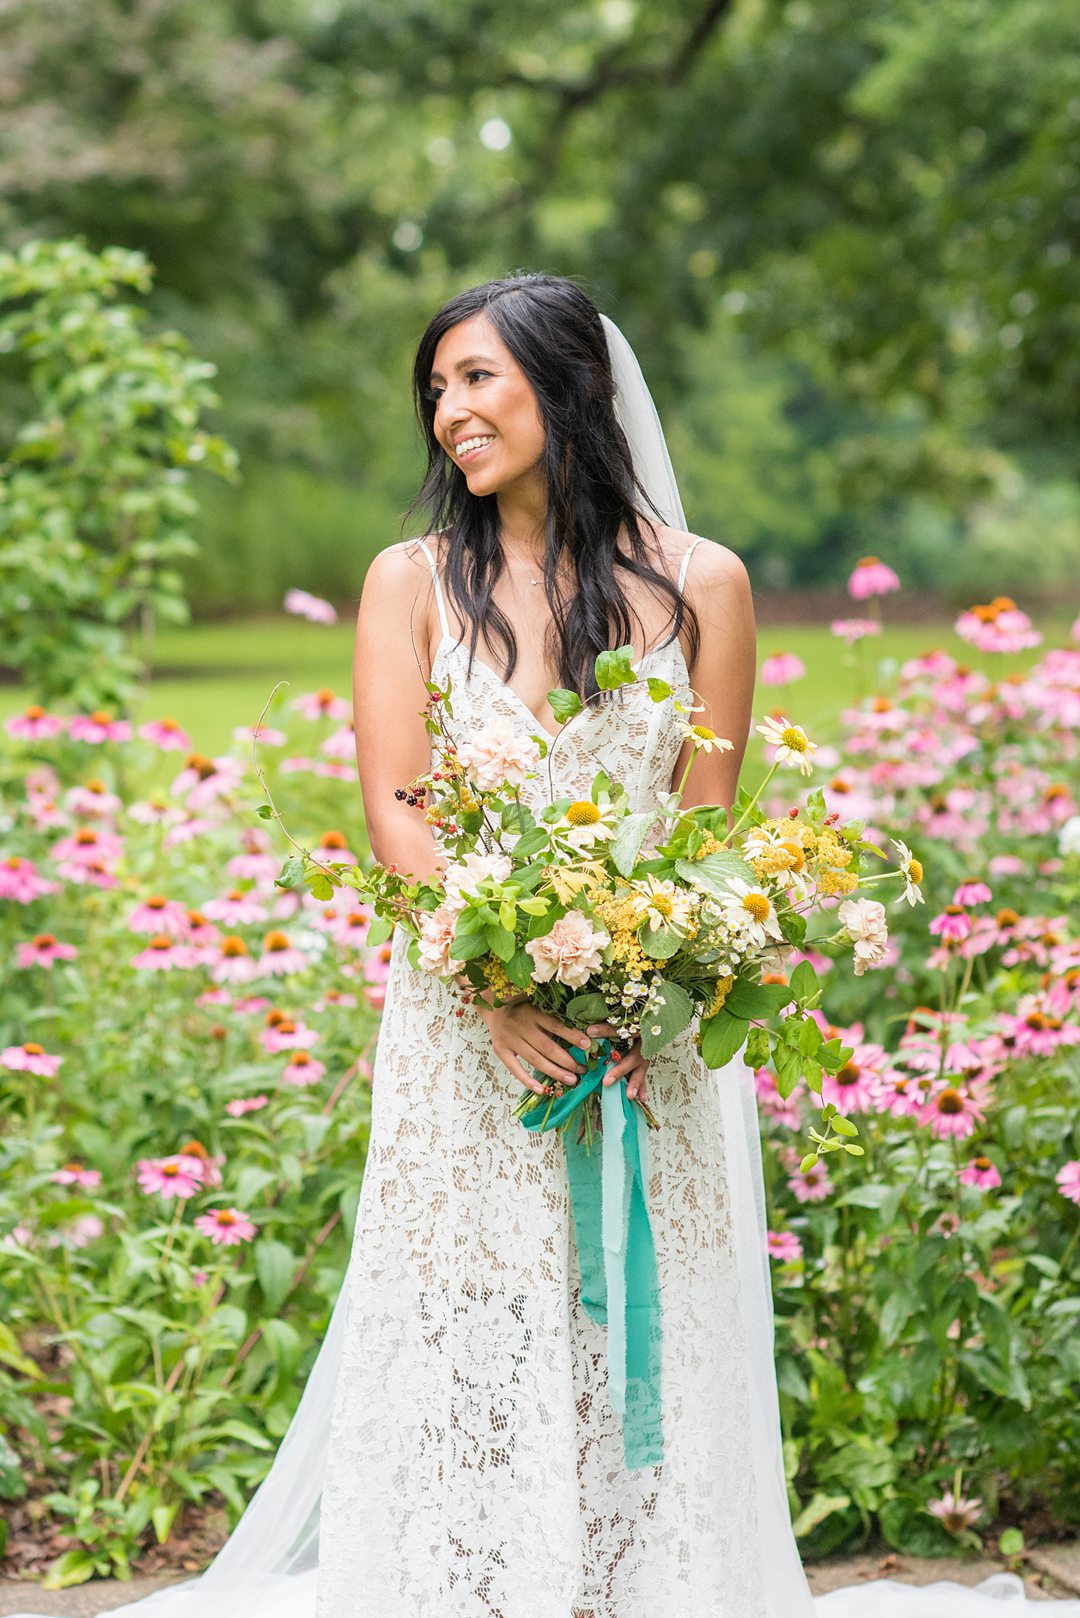 The bride after her small outdoor ceremony in a park in Raleigh, North Carolina. Photographed by Mikkel Paige Photography, hair and makeup by WINK and flowers by Mood Fleuriste. #mikkelpaige #bride #wildflowerbouquet #raleighnc